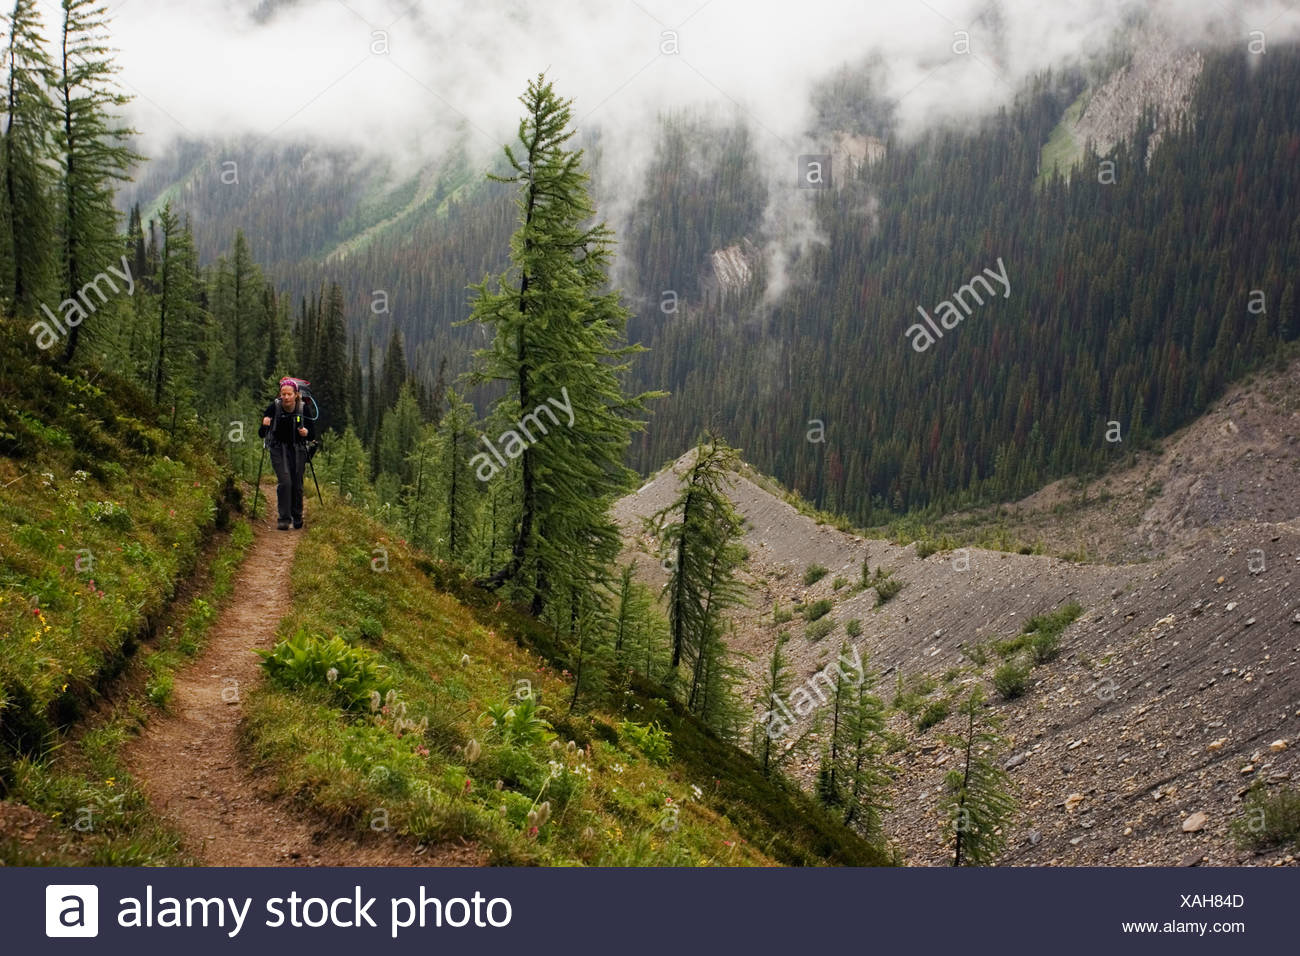 A female backpacker in her early thirties hiking the Rockwall Trail, Kootenay National Park. - Stock Image